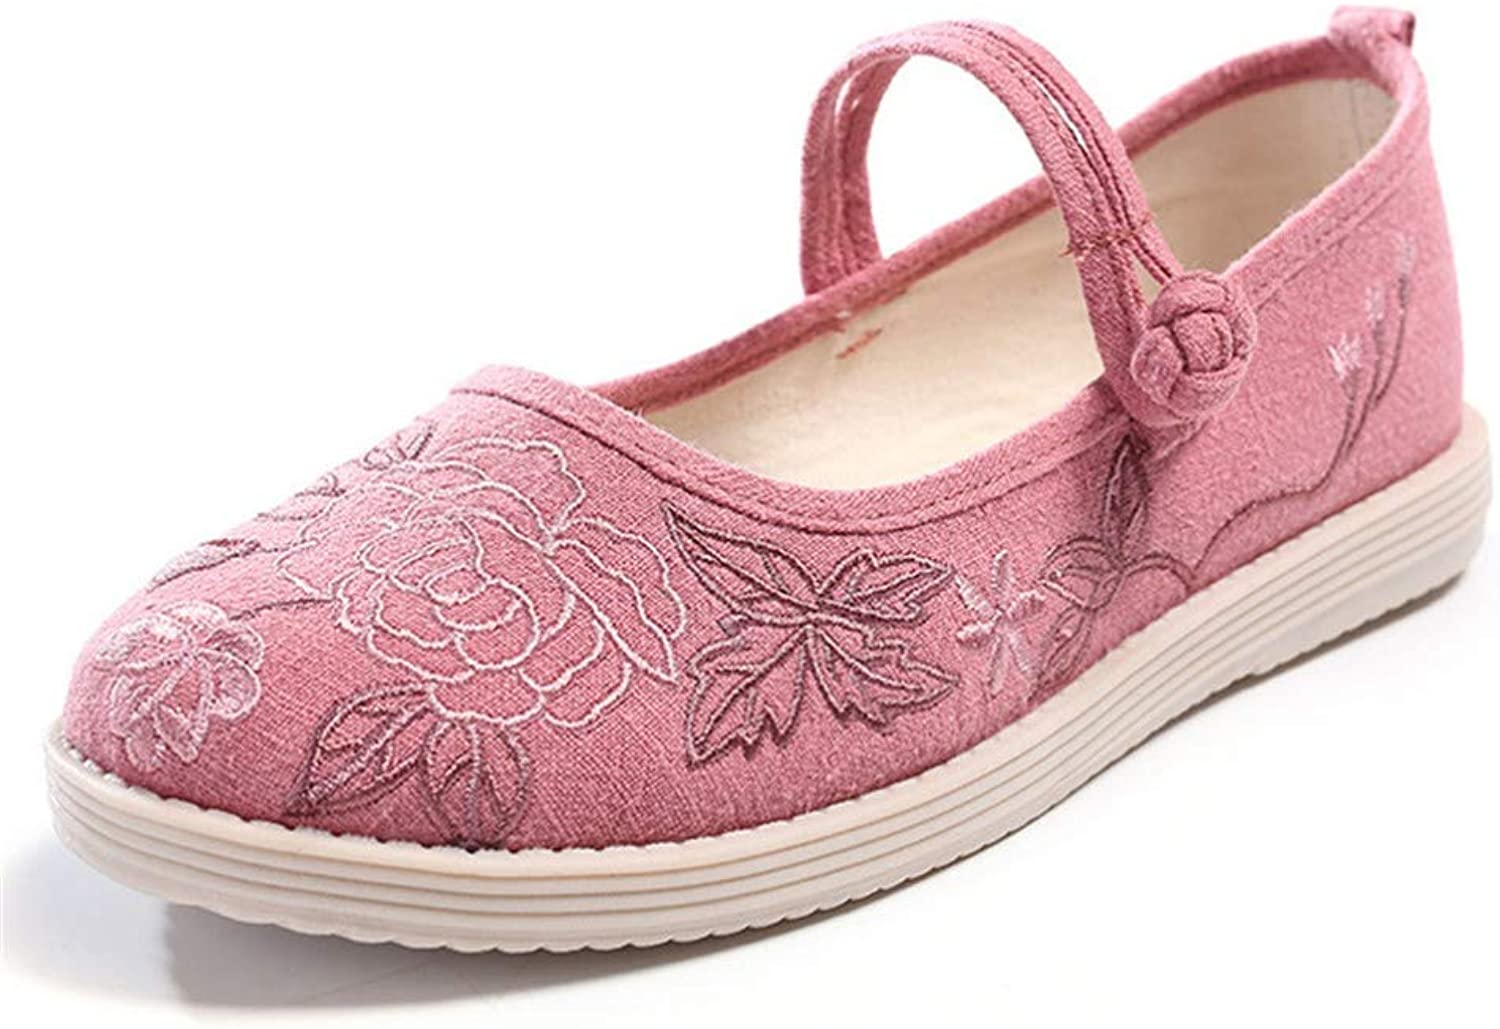 Cloth shoes, Cotton and Hemp Embroidered shoes, Women's shoes, Dancing shoes-YU&Xin